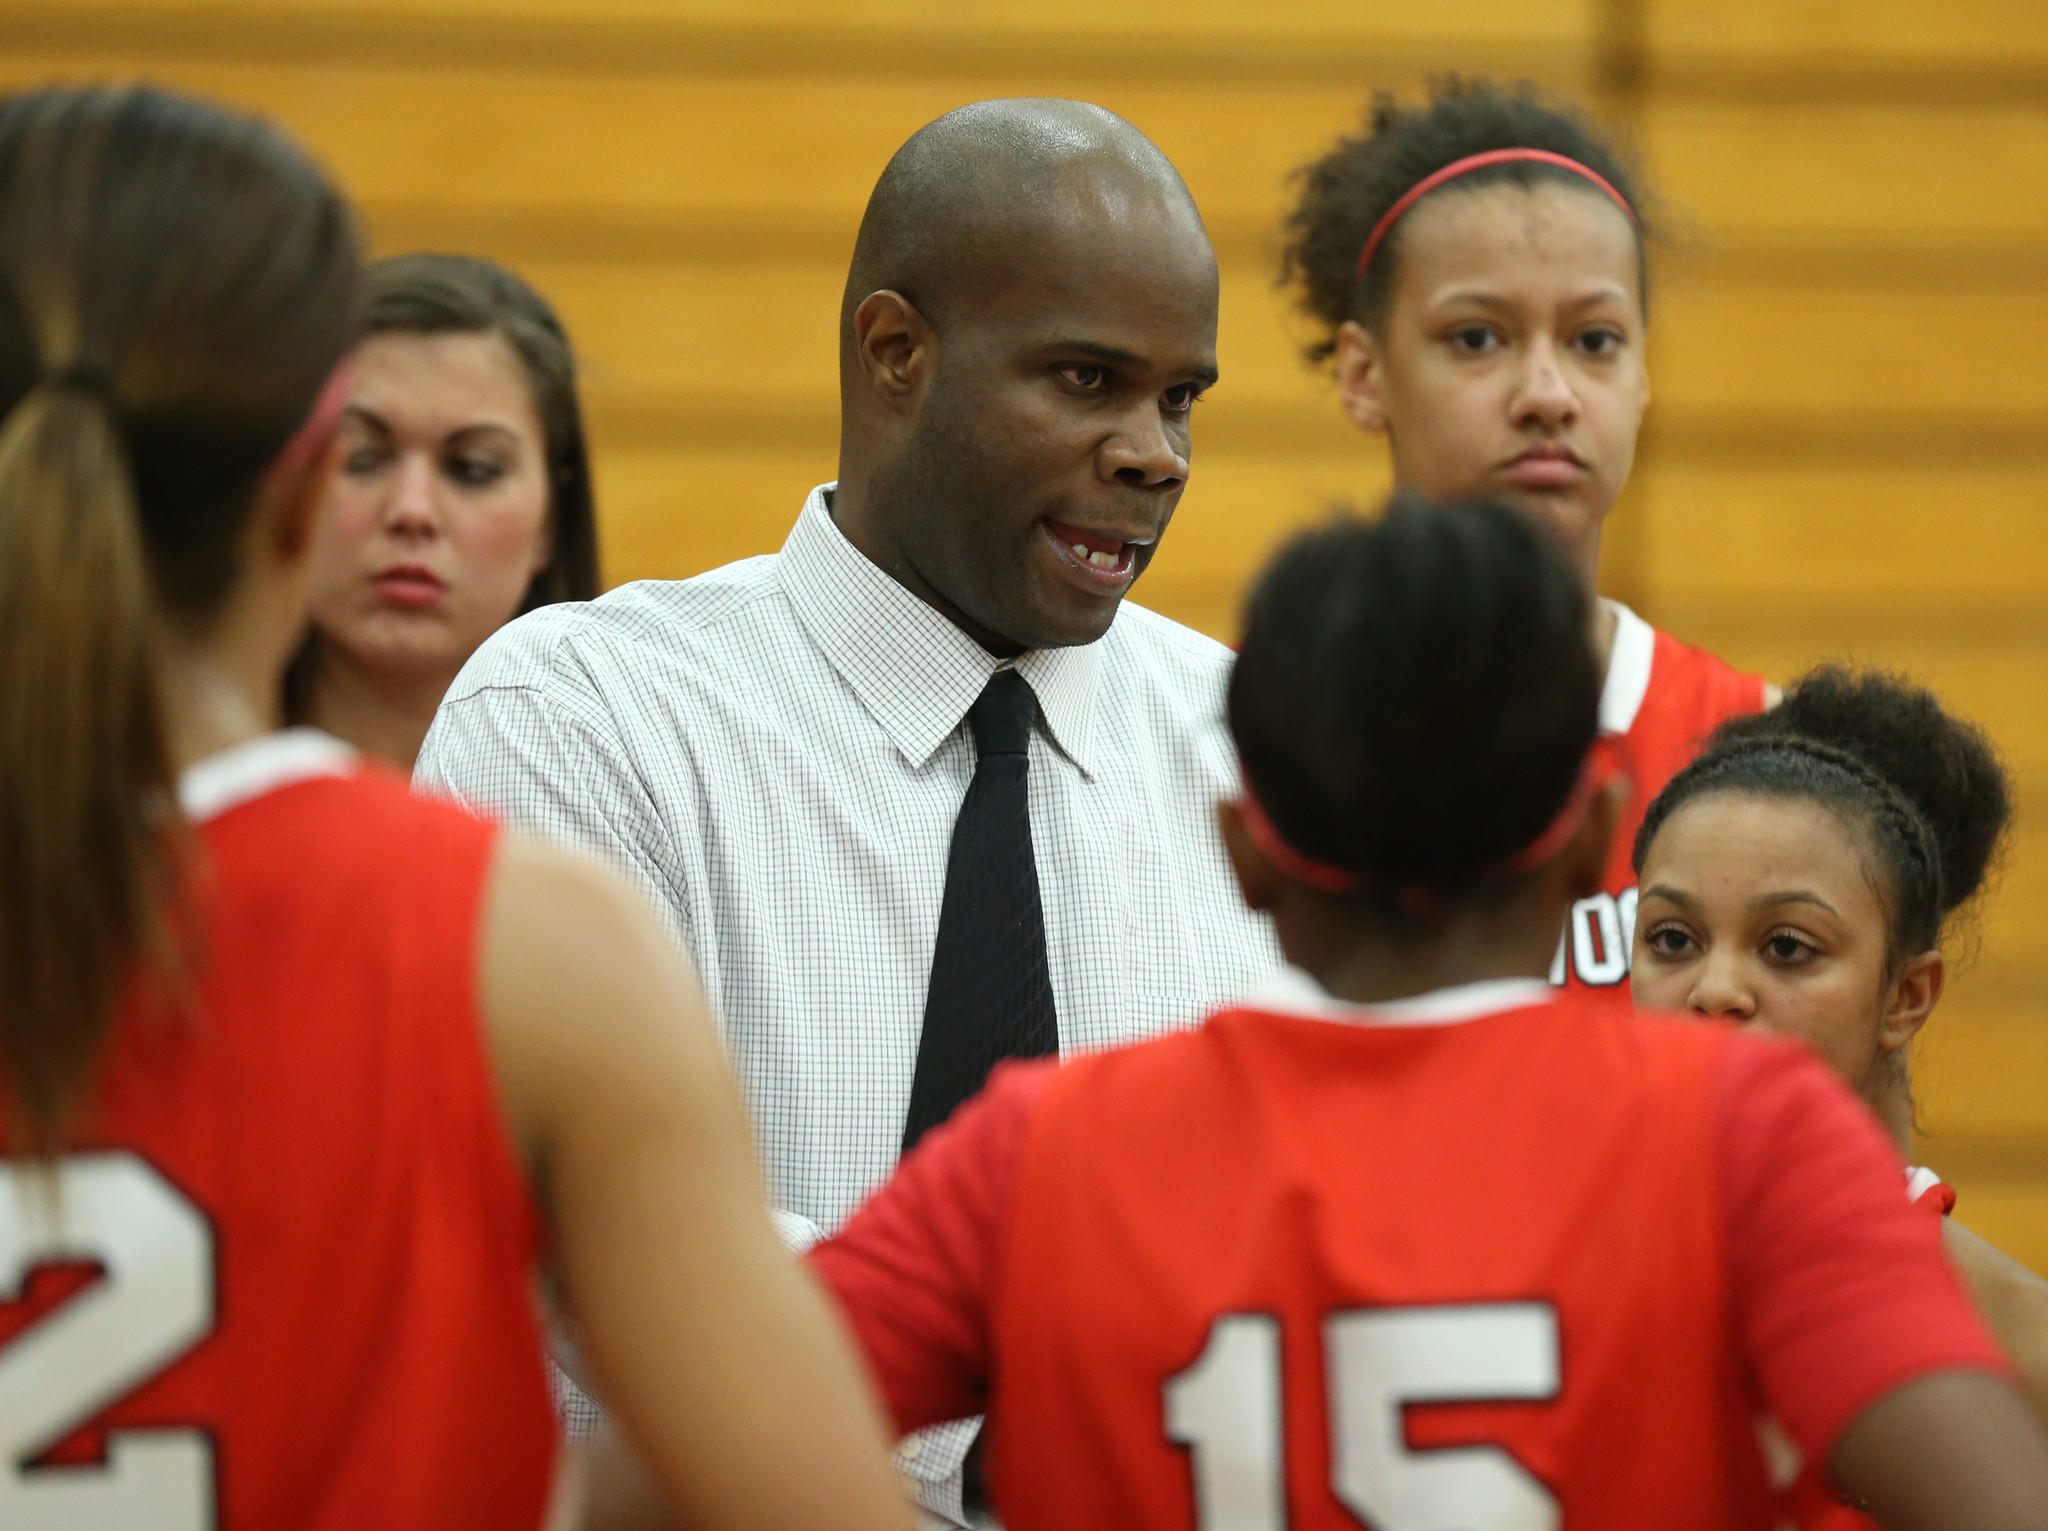 Homewood-Flossmoor coach Anthony Smith talks to his team in the second half against Lincoln-Way East at Lincoln-Way East High School on Feb. 13.